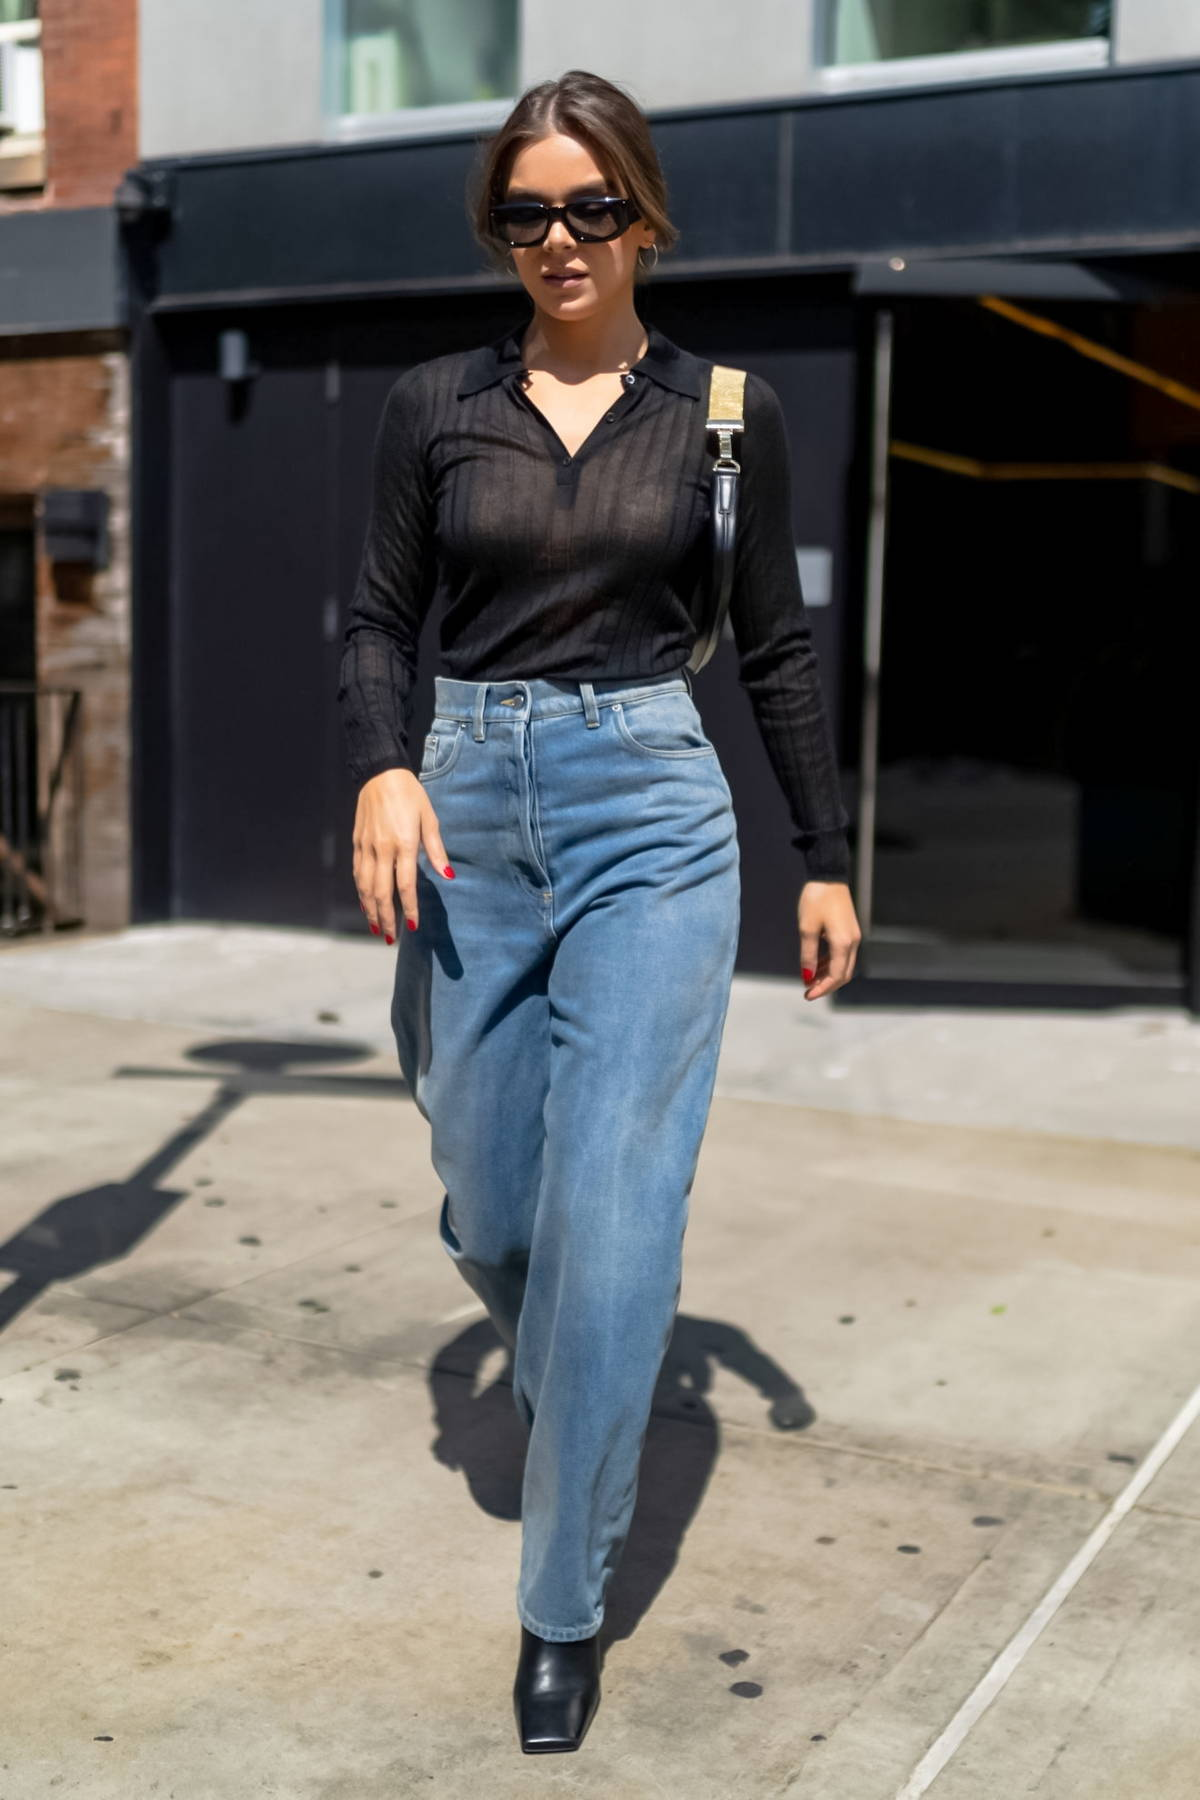 Hailee Steinfeld looks fab in a black top and jeans while out in SoHo, New York City